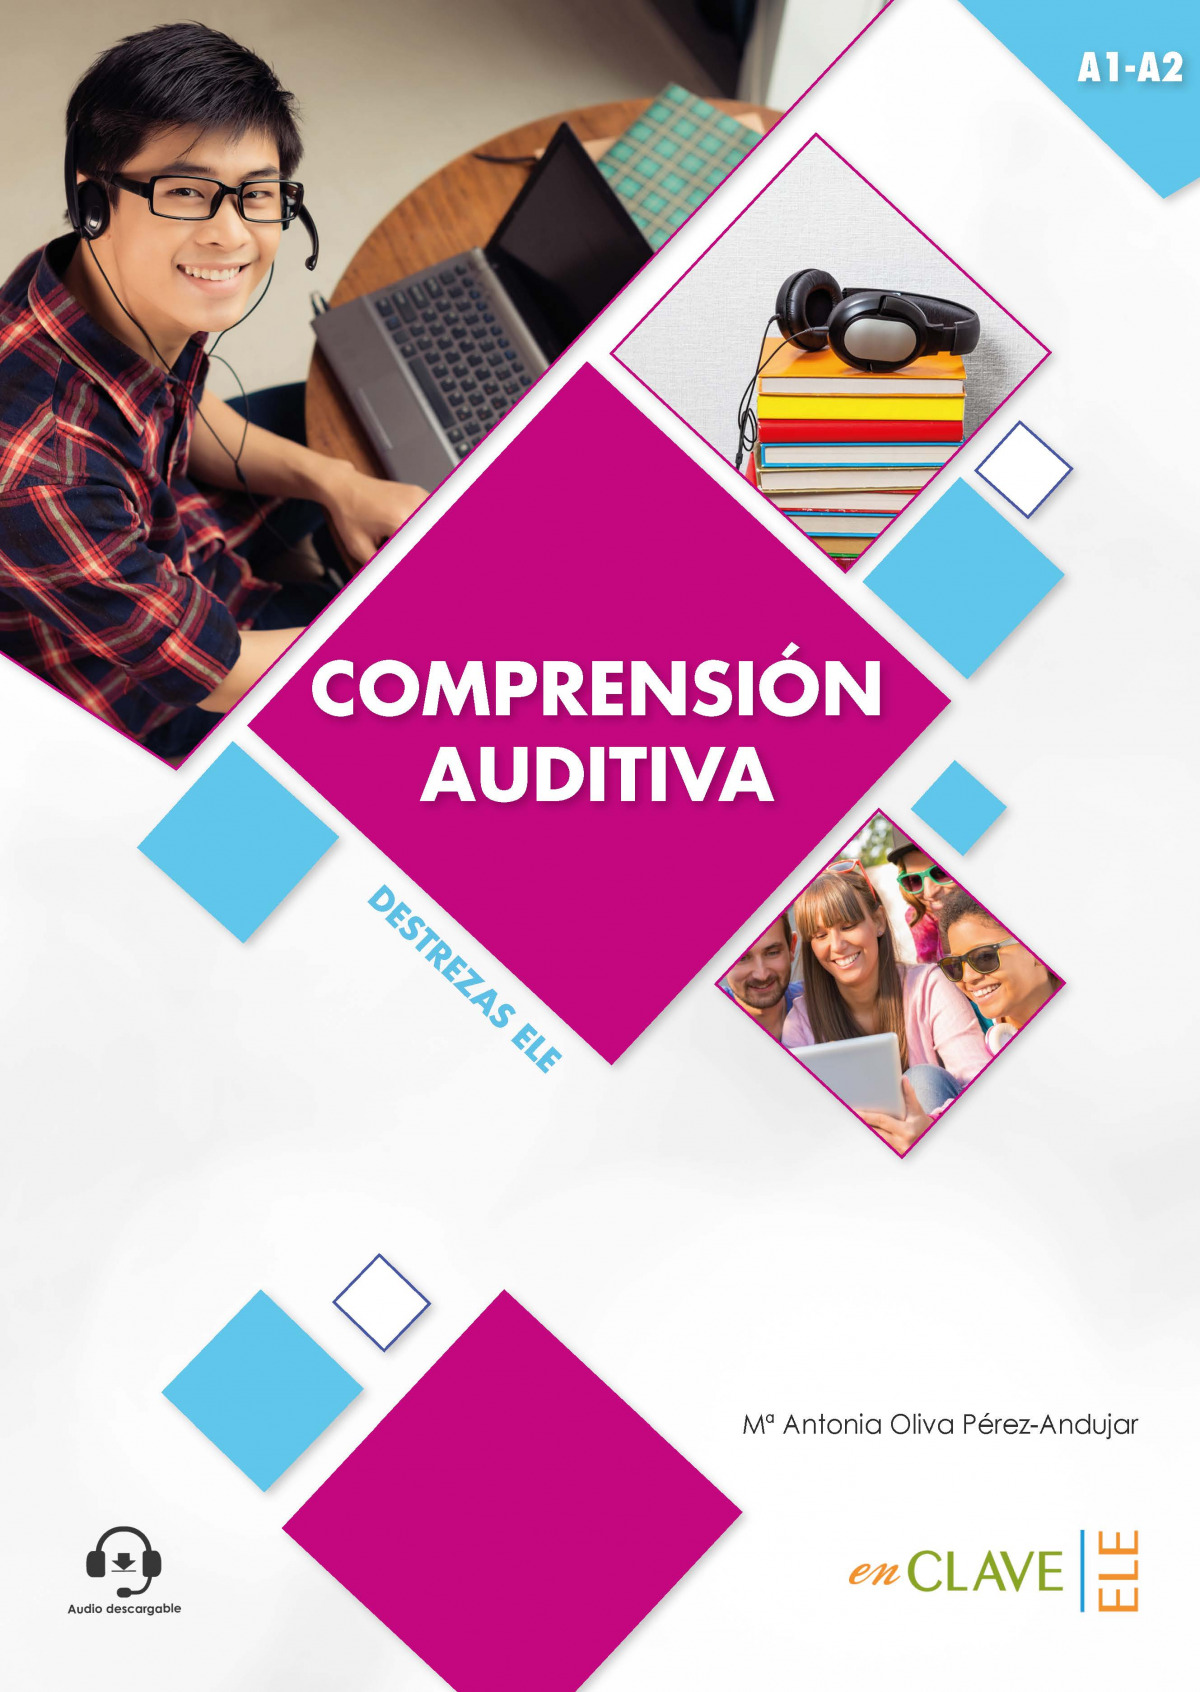 Comprensión auditiva A1-A2